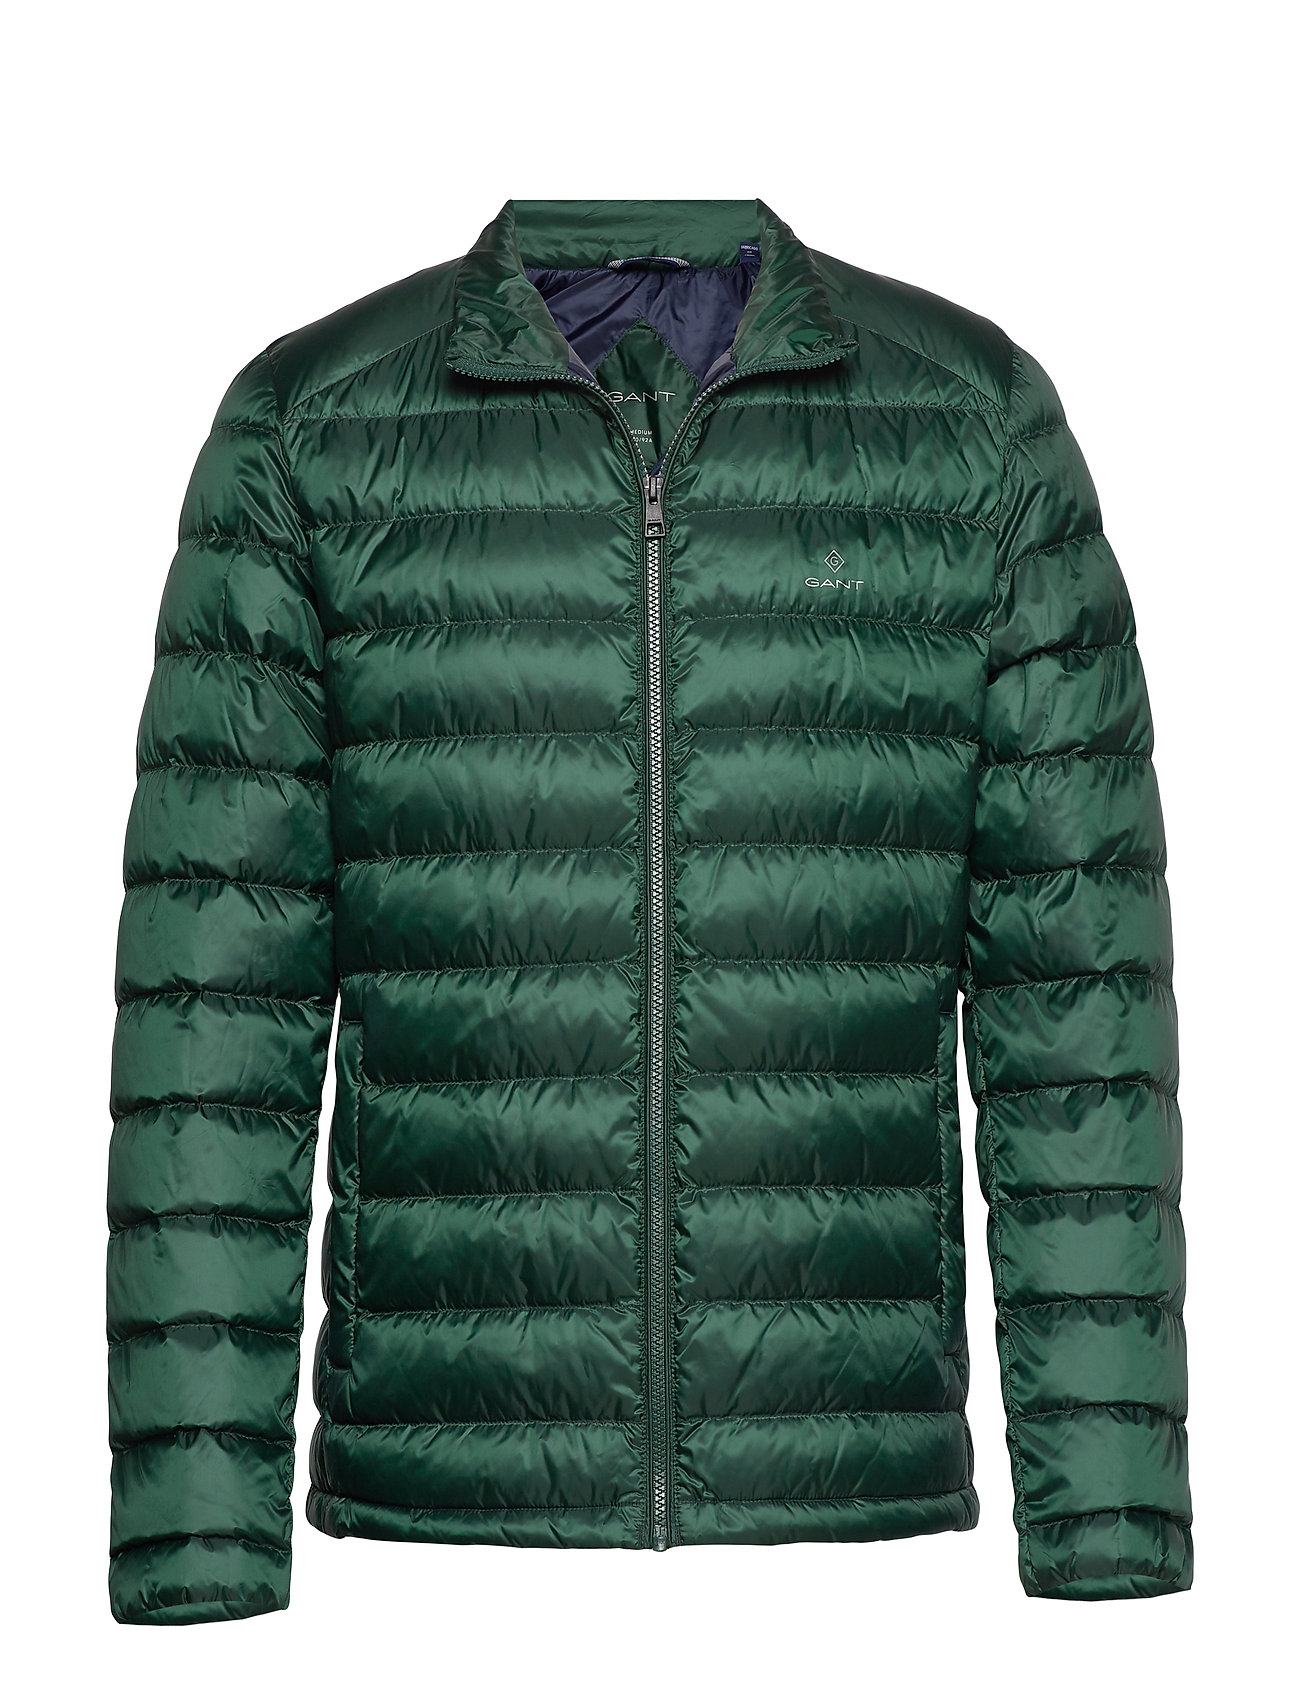 Gant D1. THE LIGHT DOWN JACKET - TARTAN GREEN